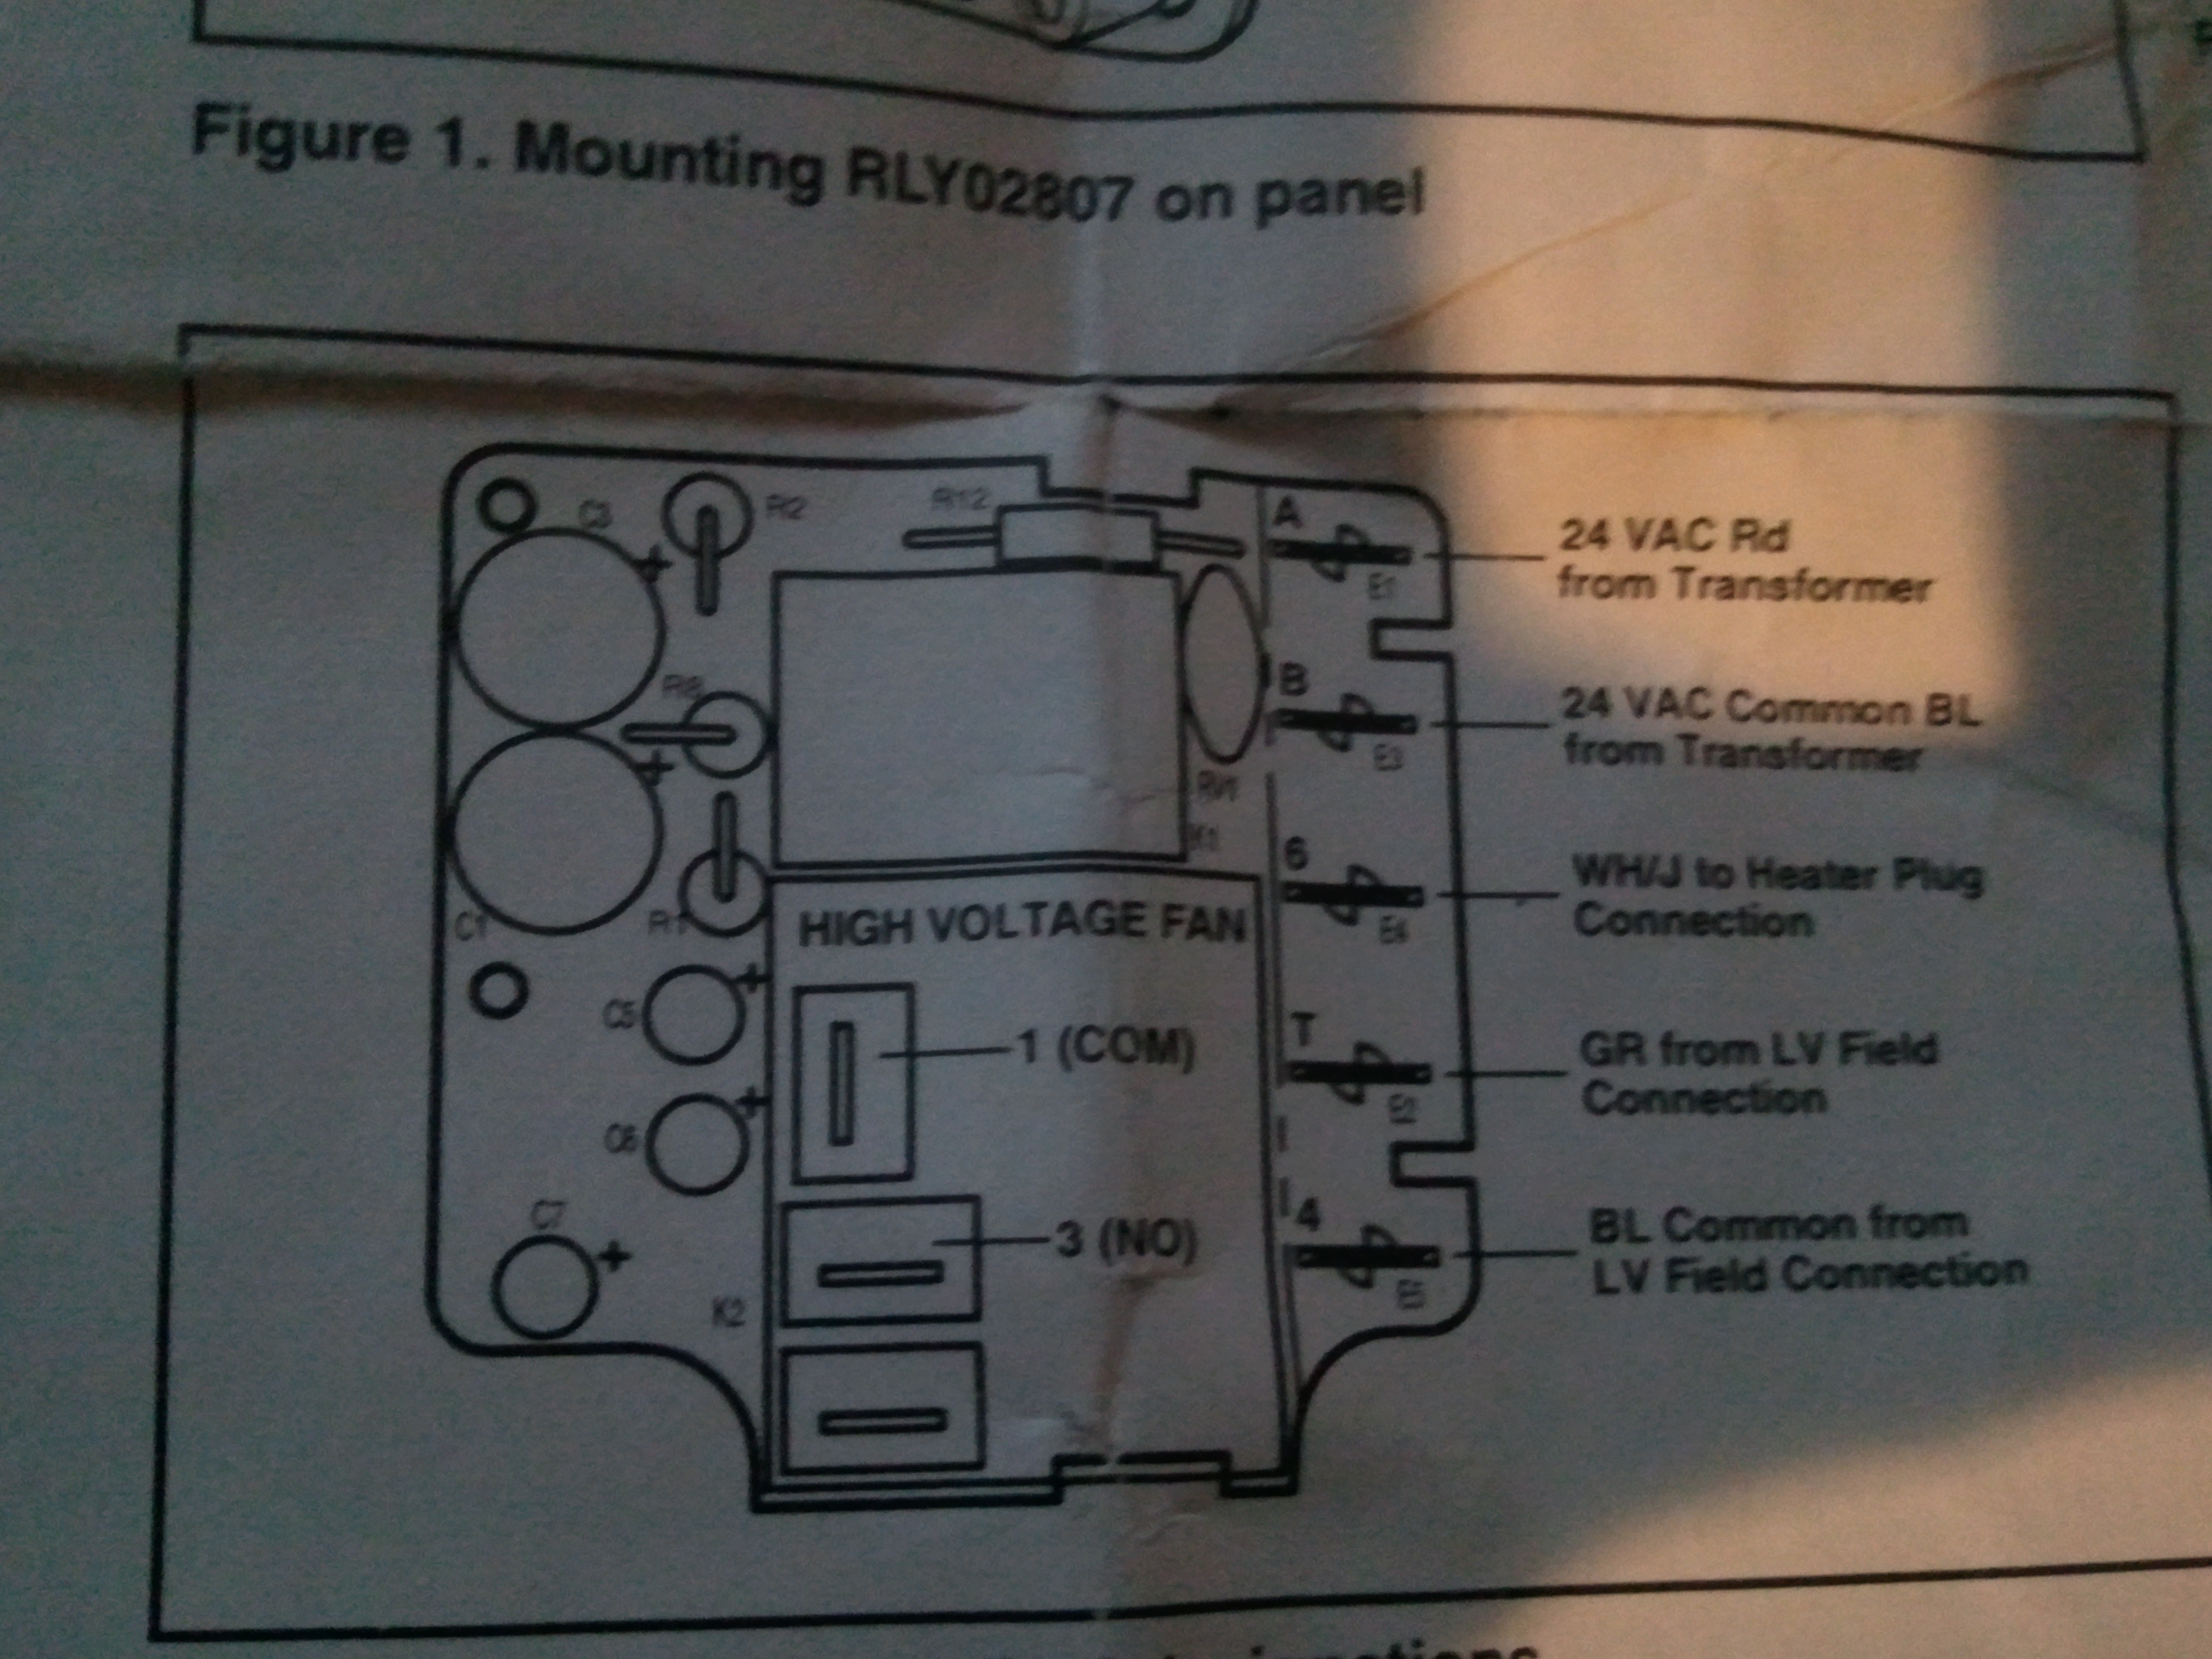 wire diagram for timer switch i am having trouble wiring a rly02807 time delay relay on a